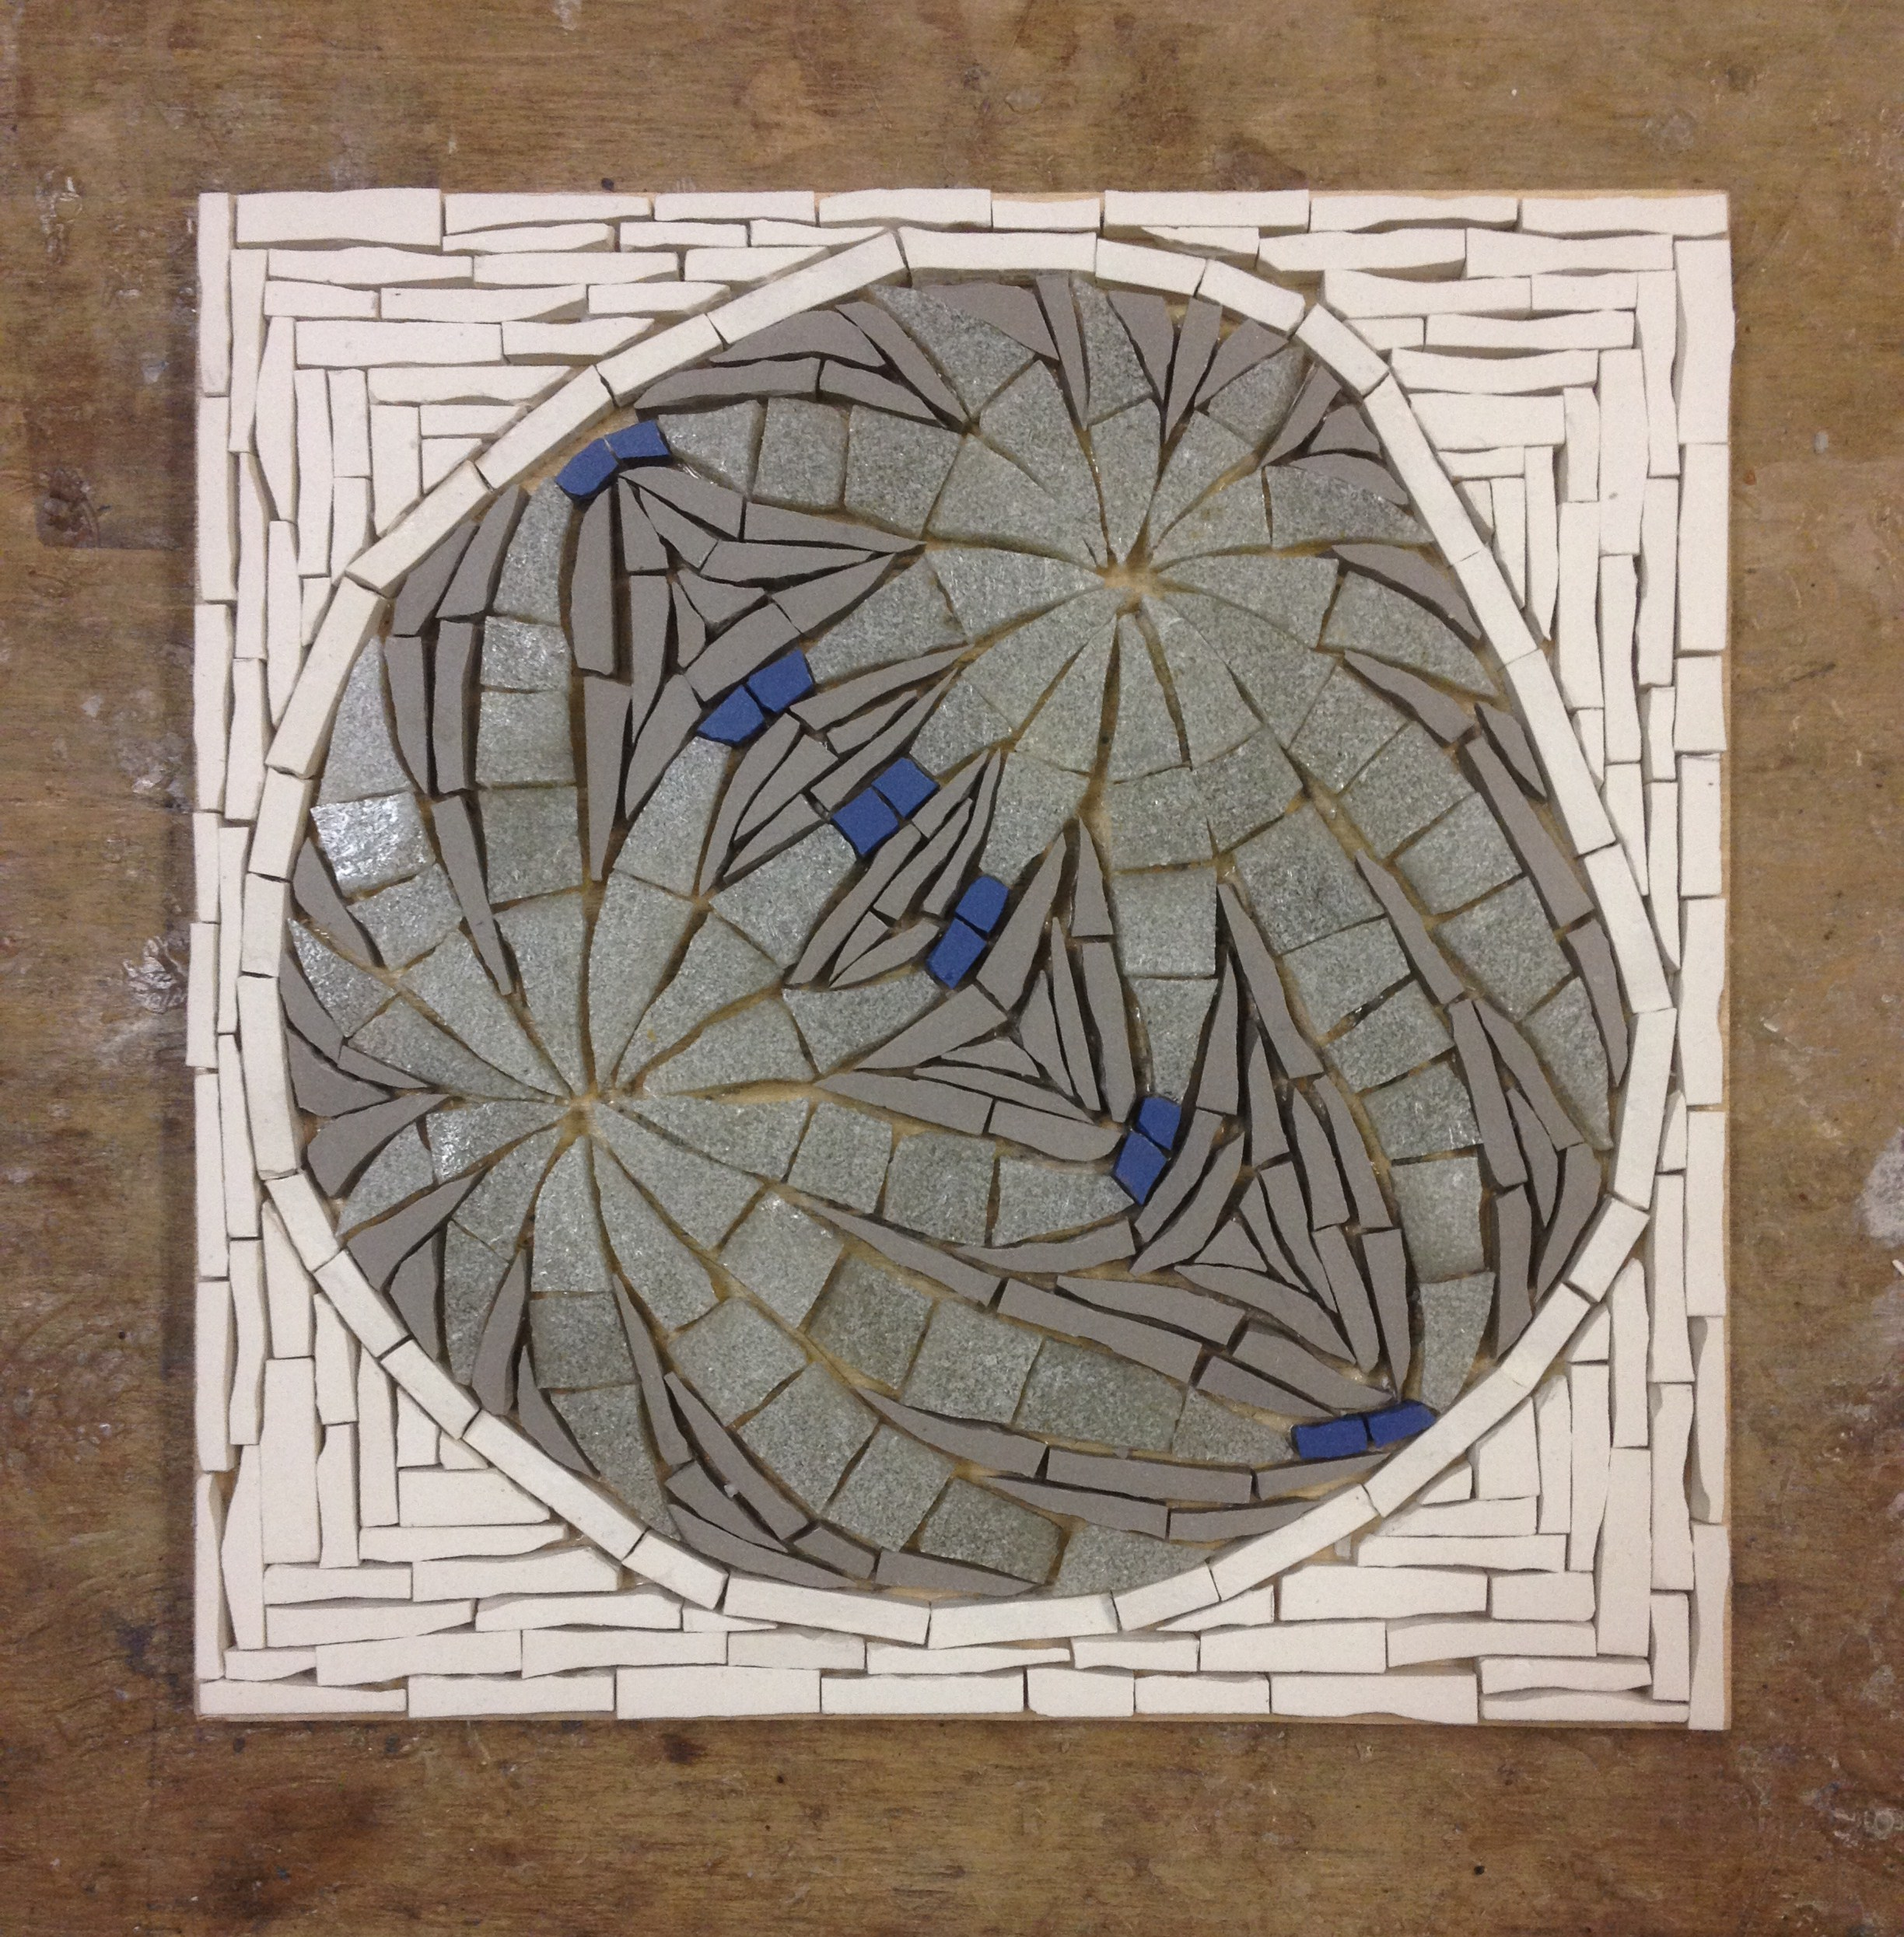 Biology inspired mosaic in progress